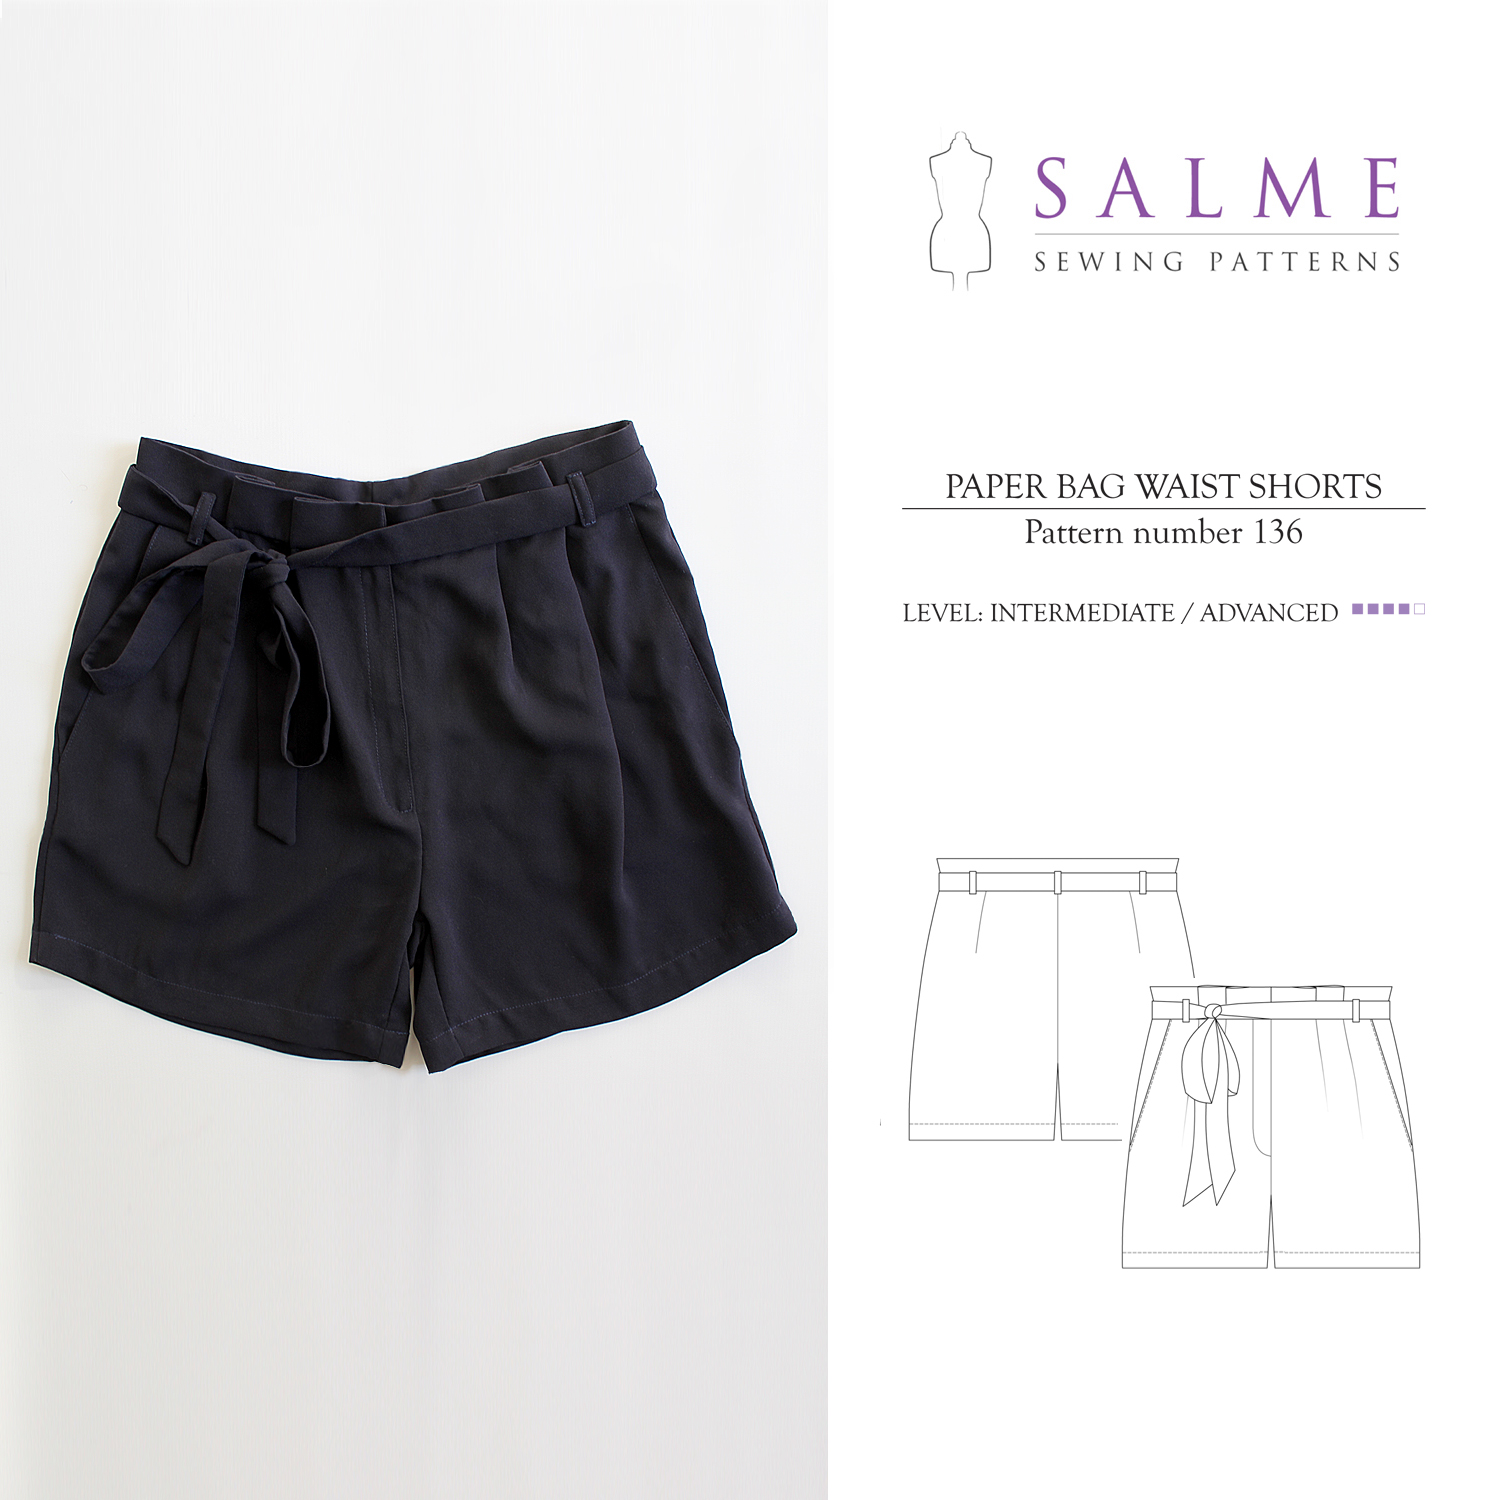 salme sewing patterns 136 paper bag waist shorts